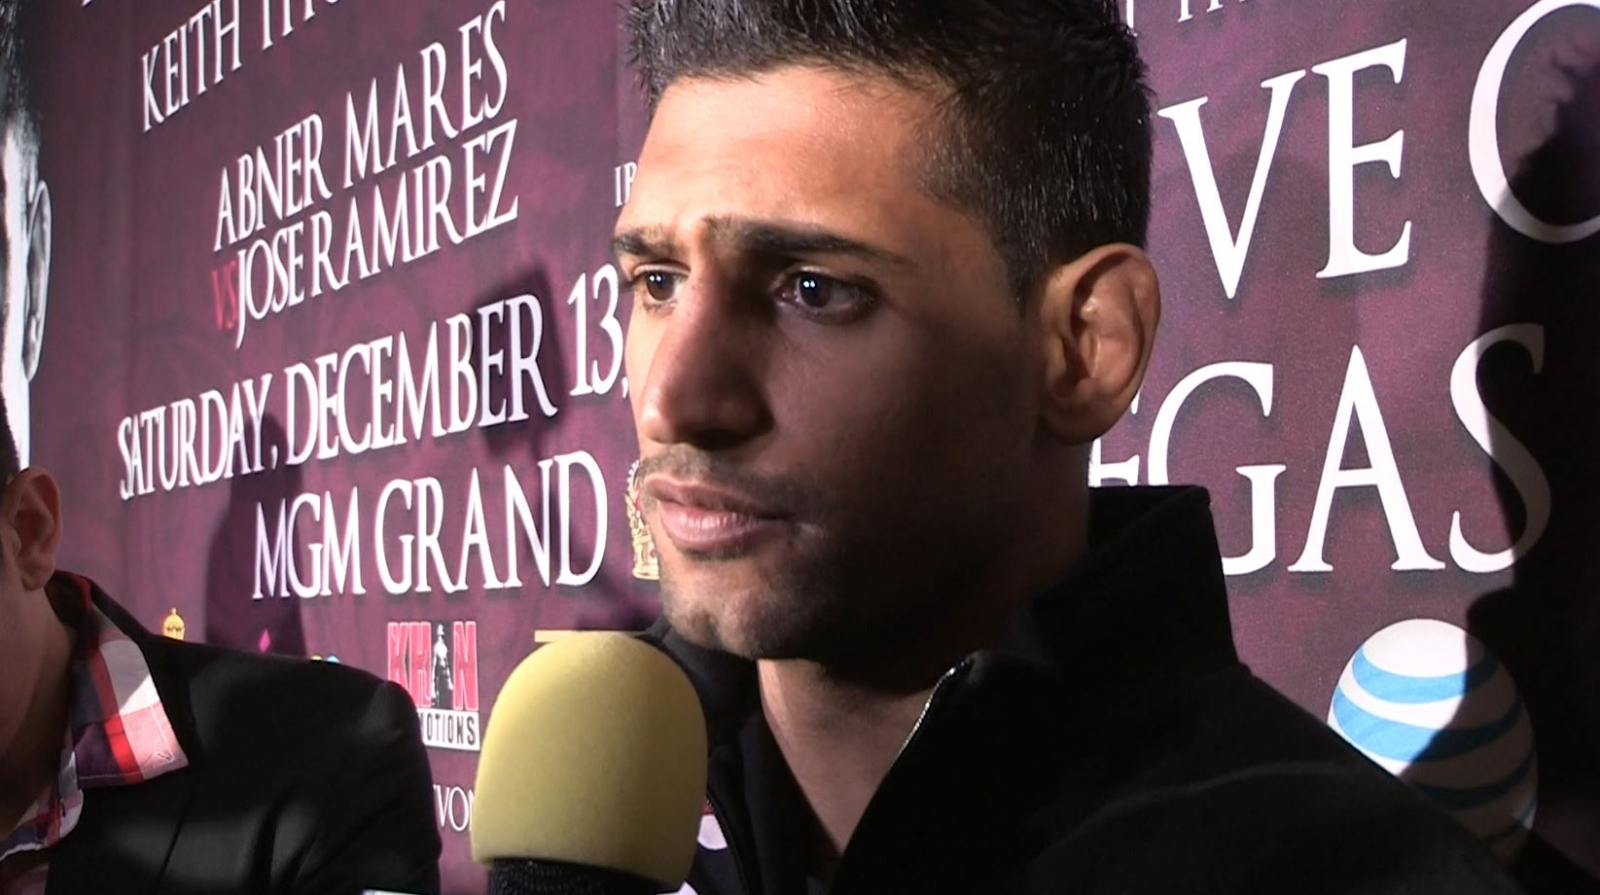 Amir Khan: Mayweather fight at Wembley would be amazing